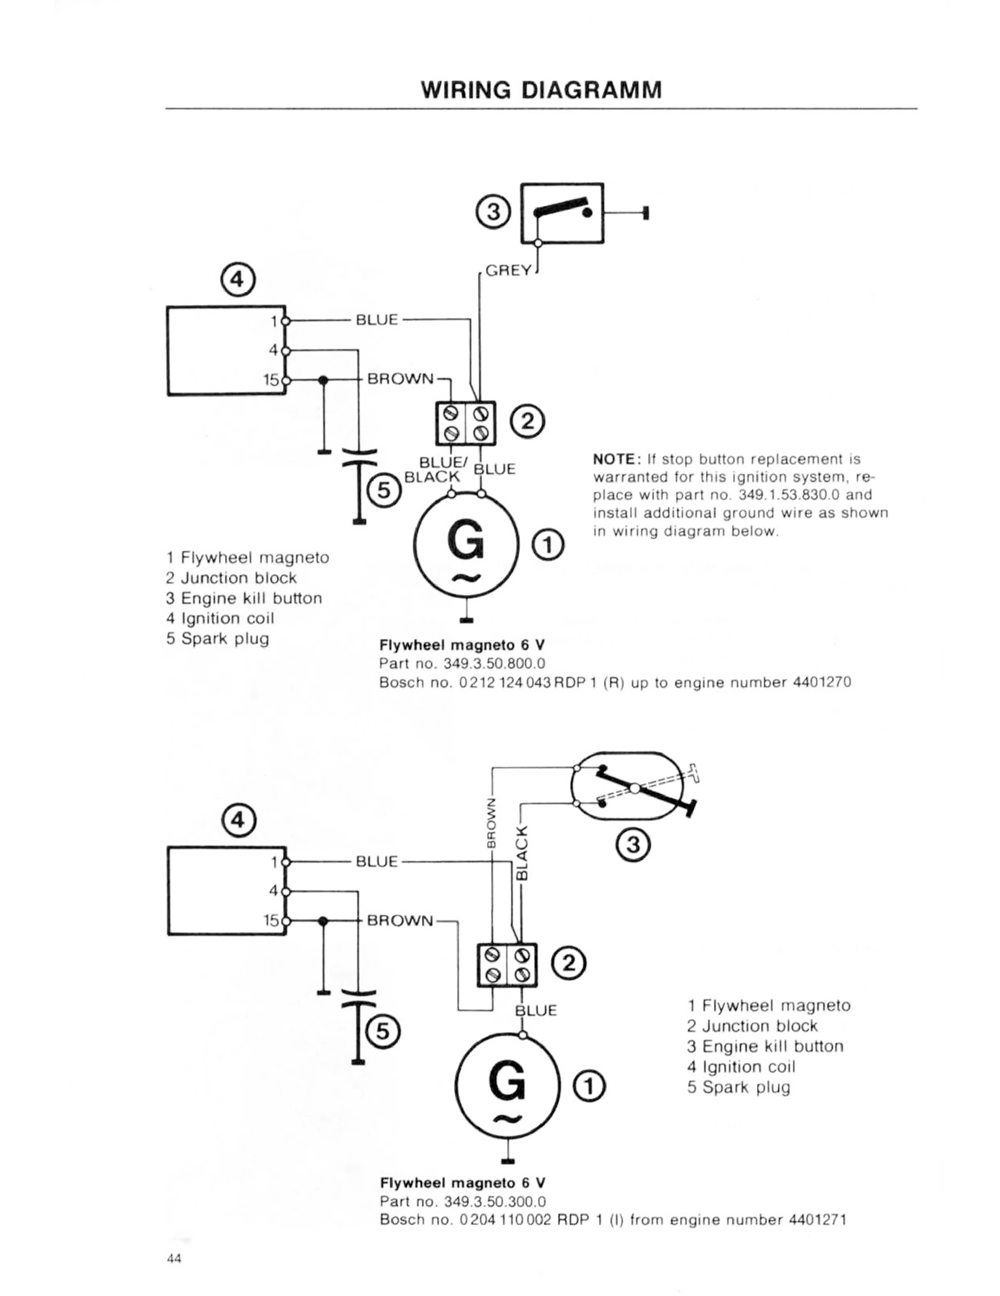 [DIAGRAM_38DE]  Puch wiring diagrams - Moped Wiki | Wiring Diagram Puch Newport |  | Moped Army